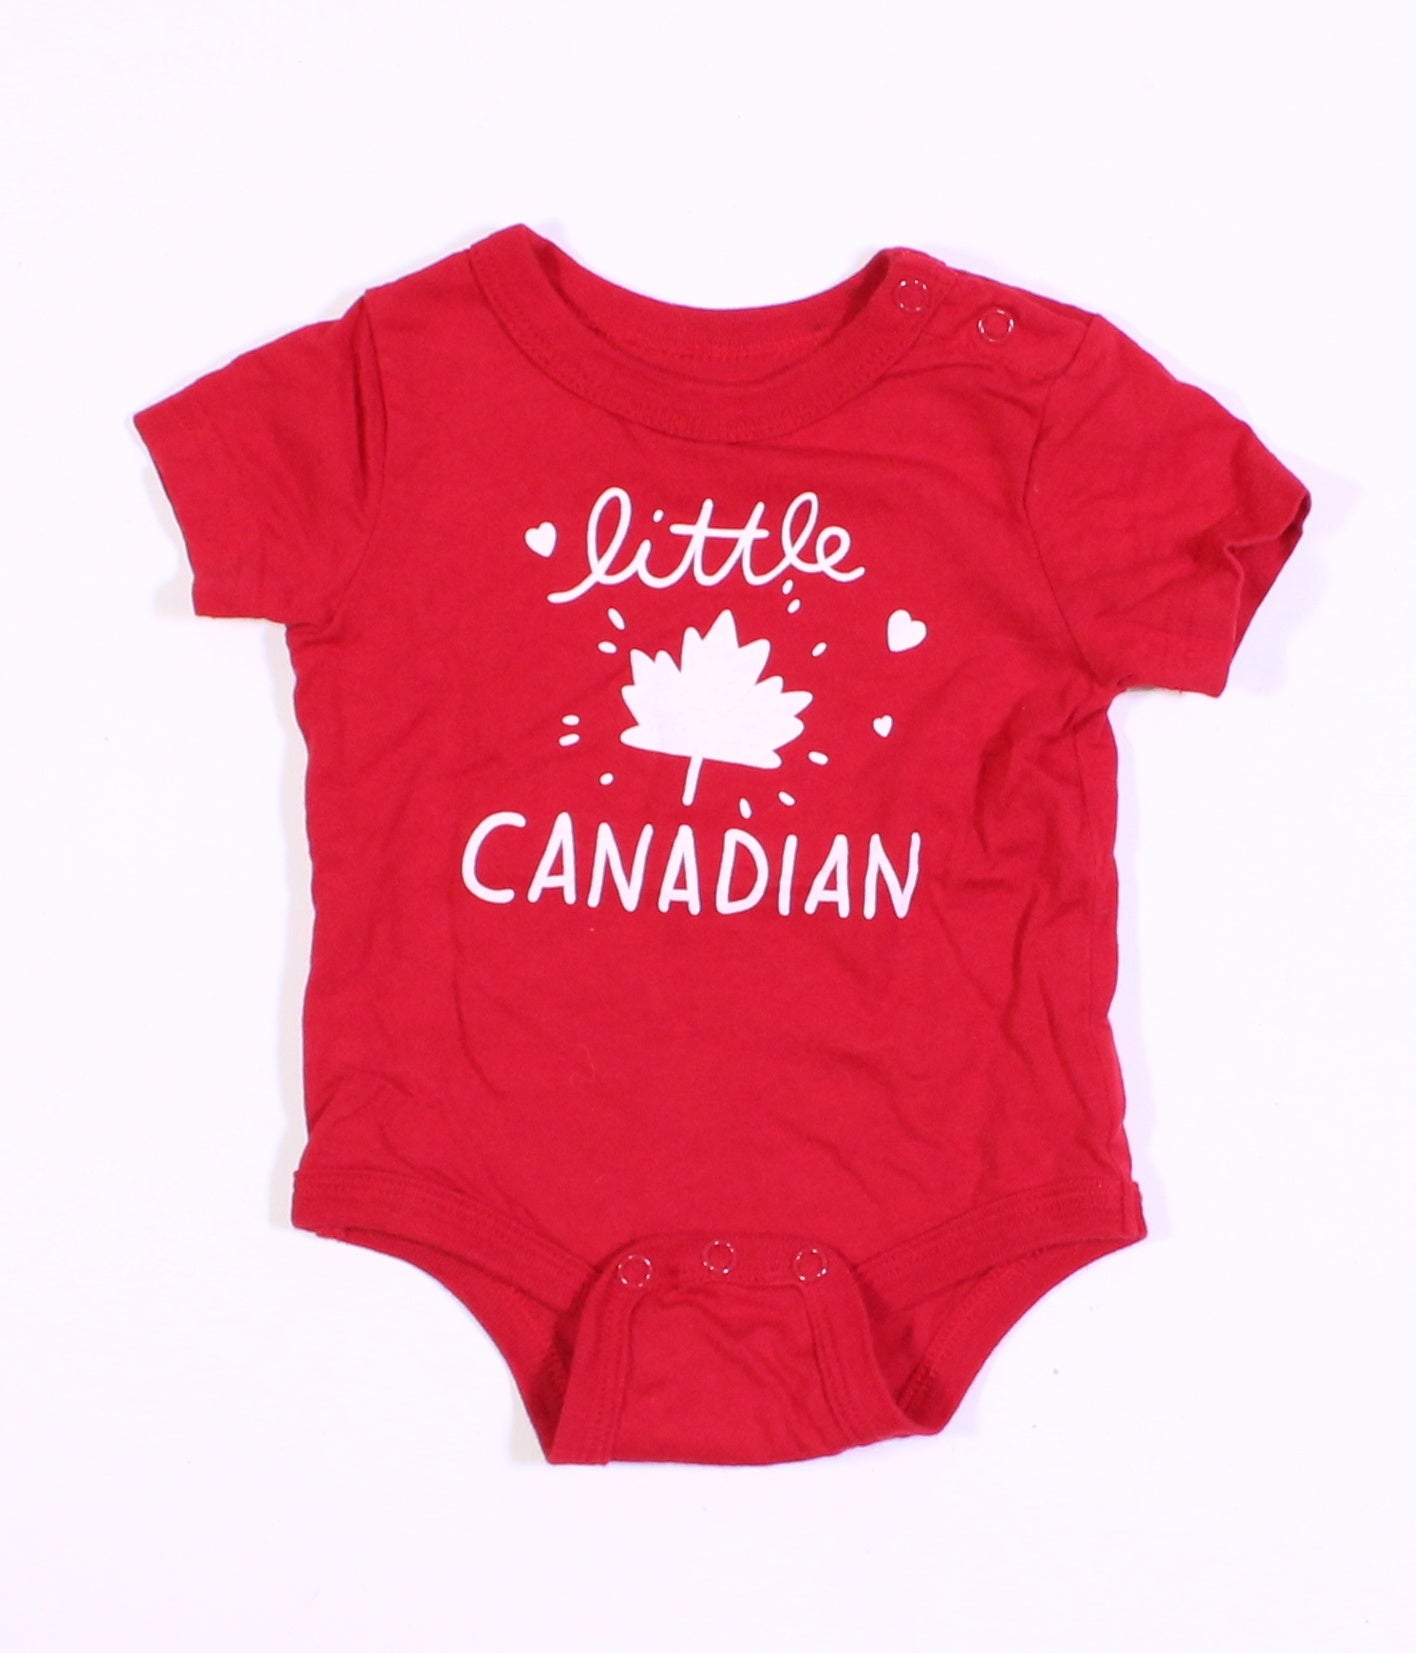 BOYS NB TO 3 MONTHS  - Betty s Consignment f2dd22f71